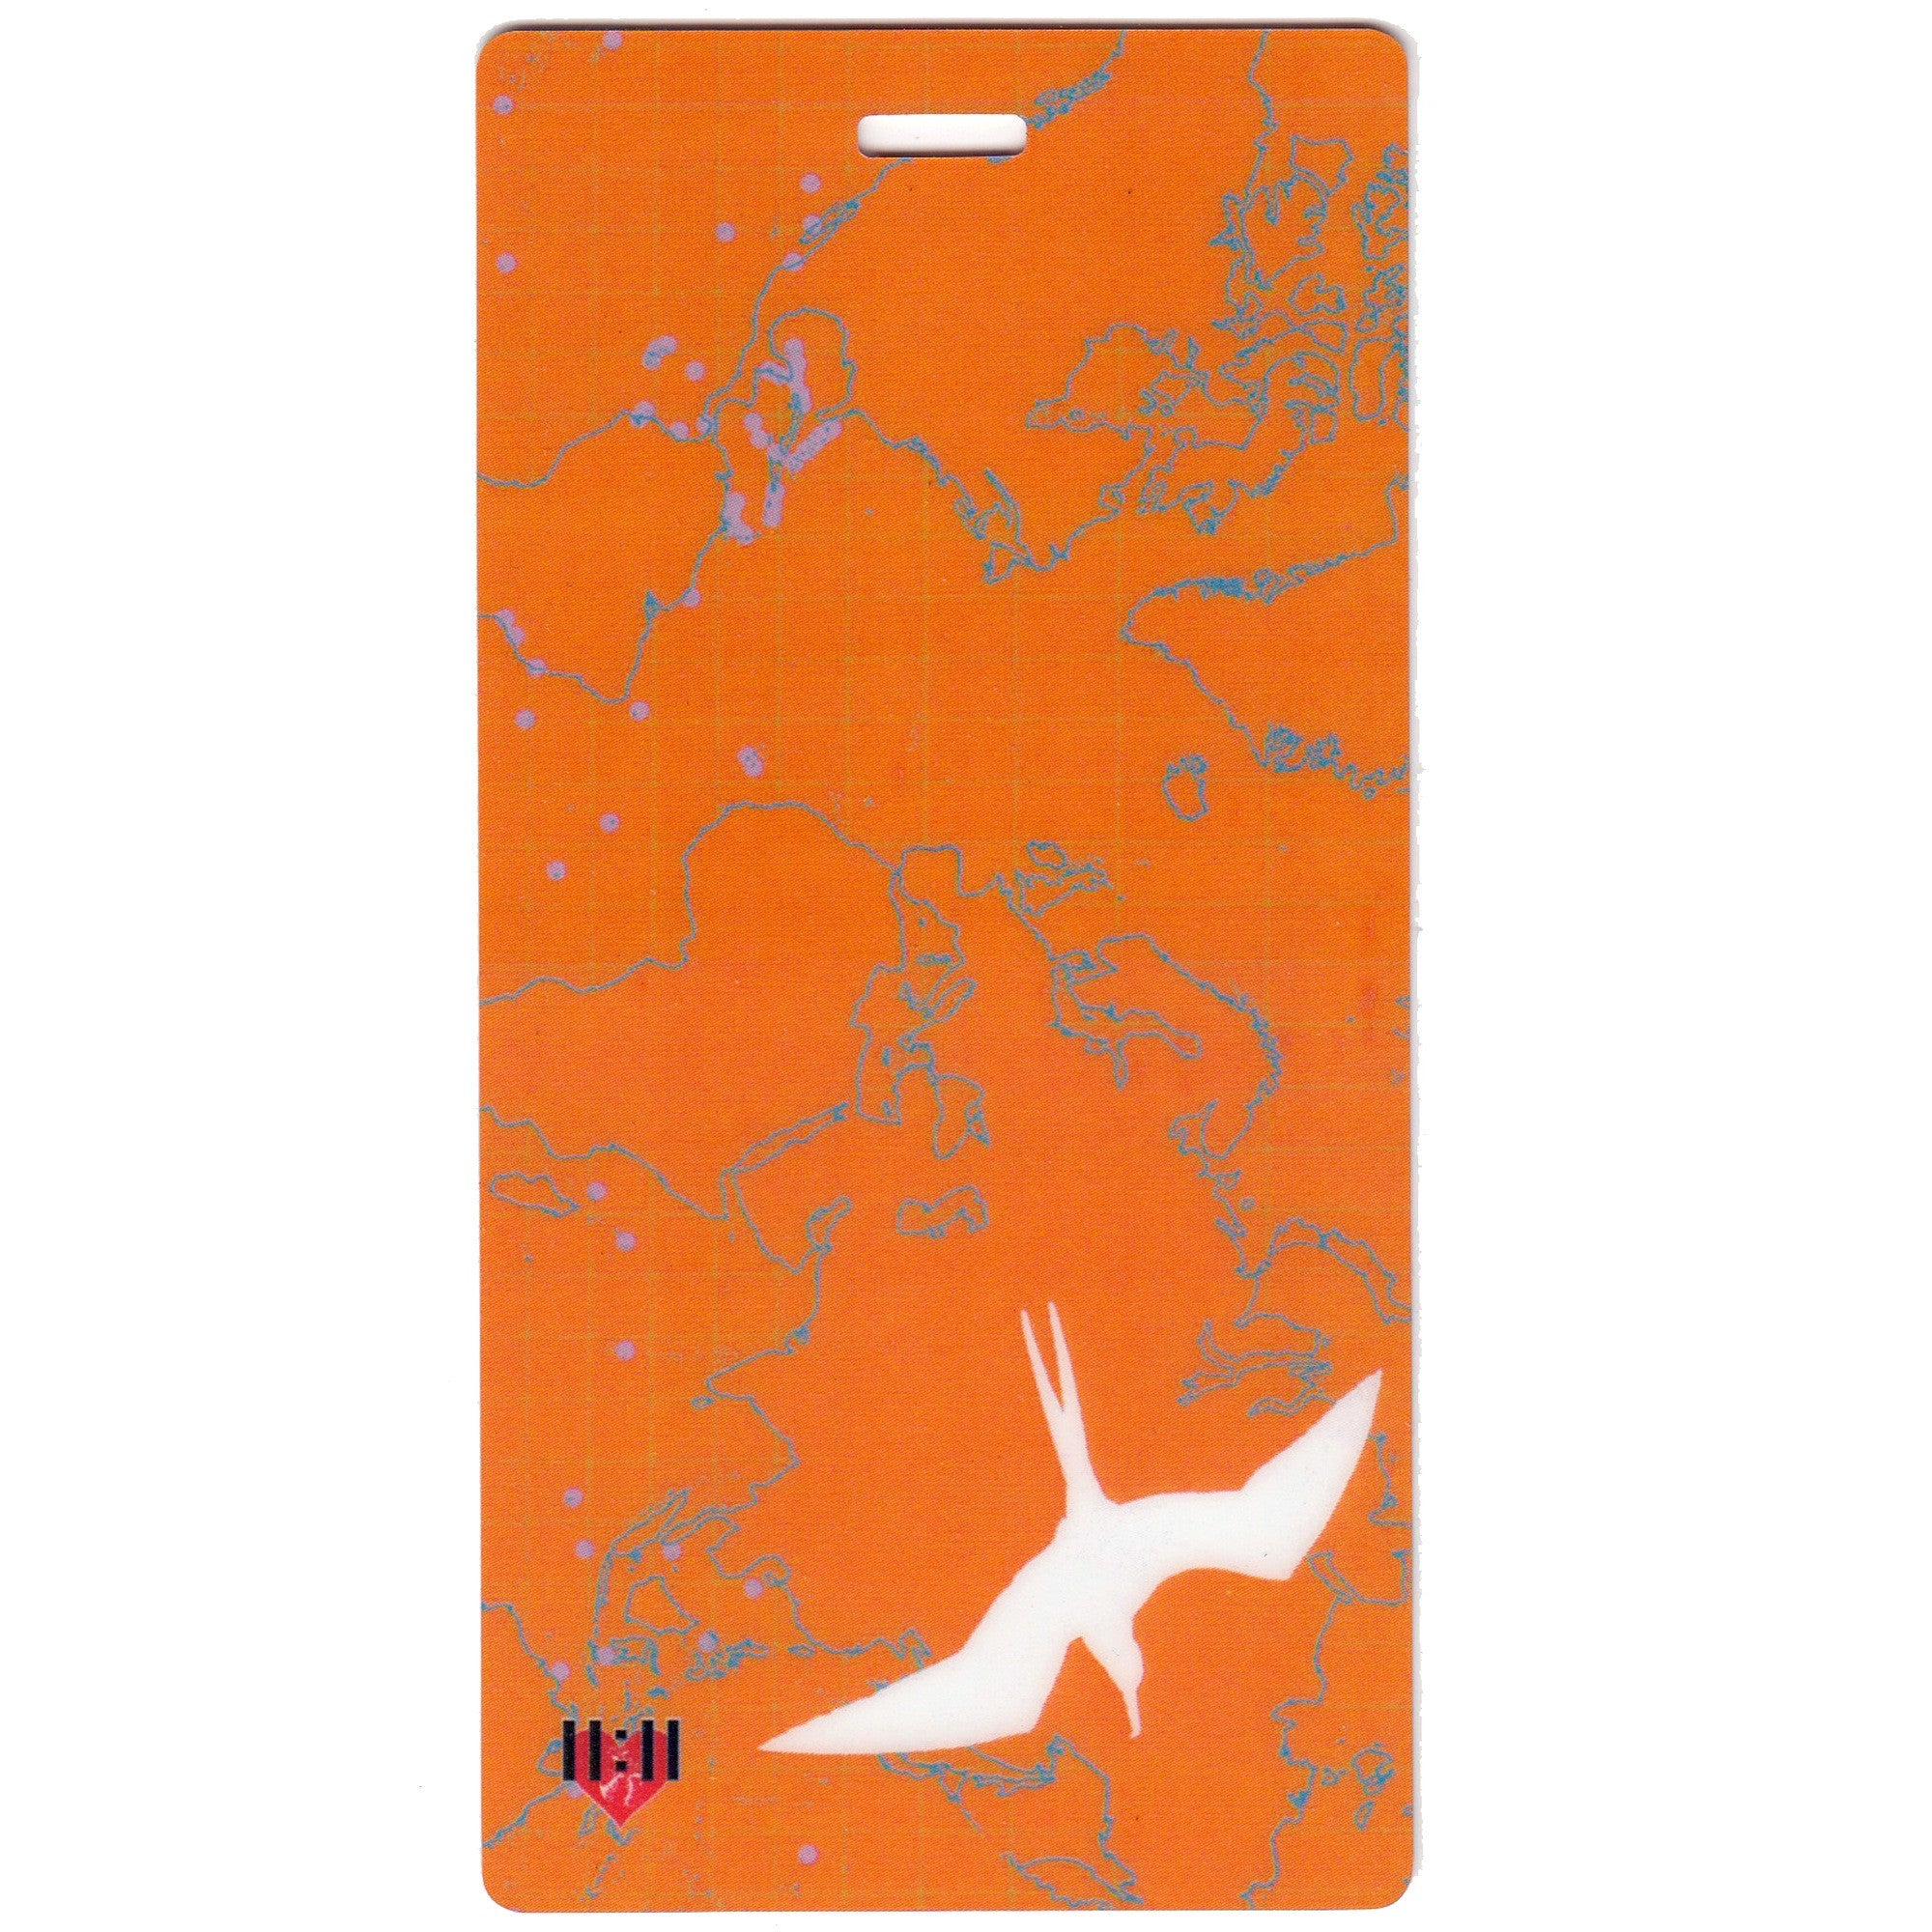 Orange Bird Map Luggage Bag Tag Set - 2 pc, Large by 11:11 Enterprises